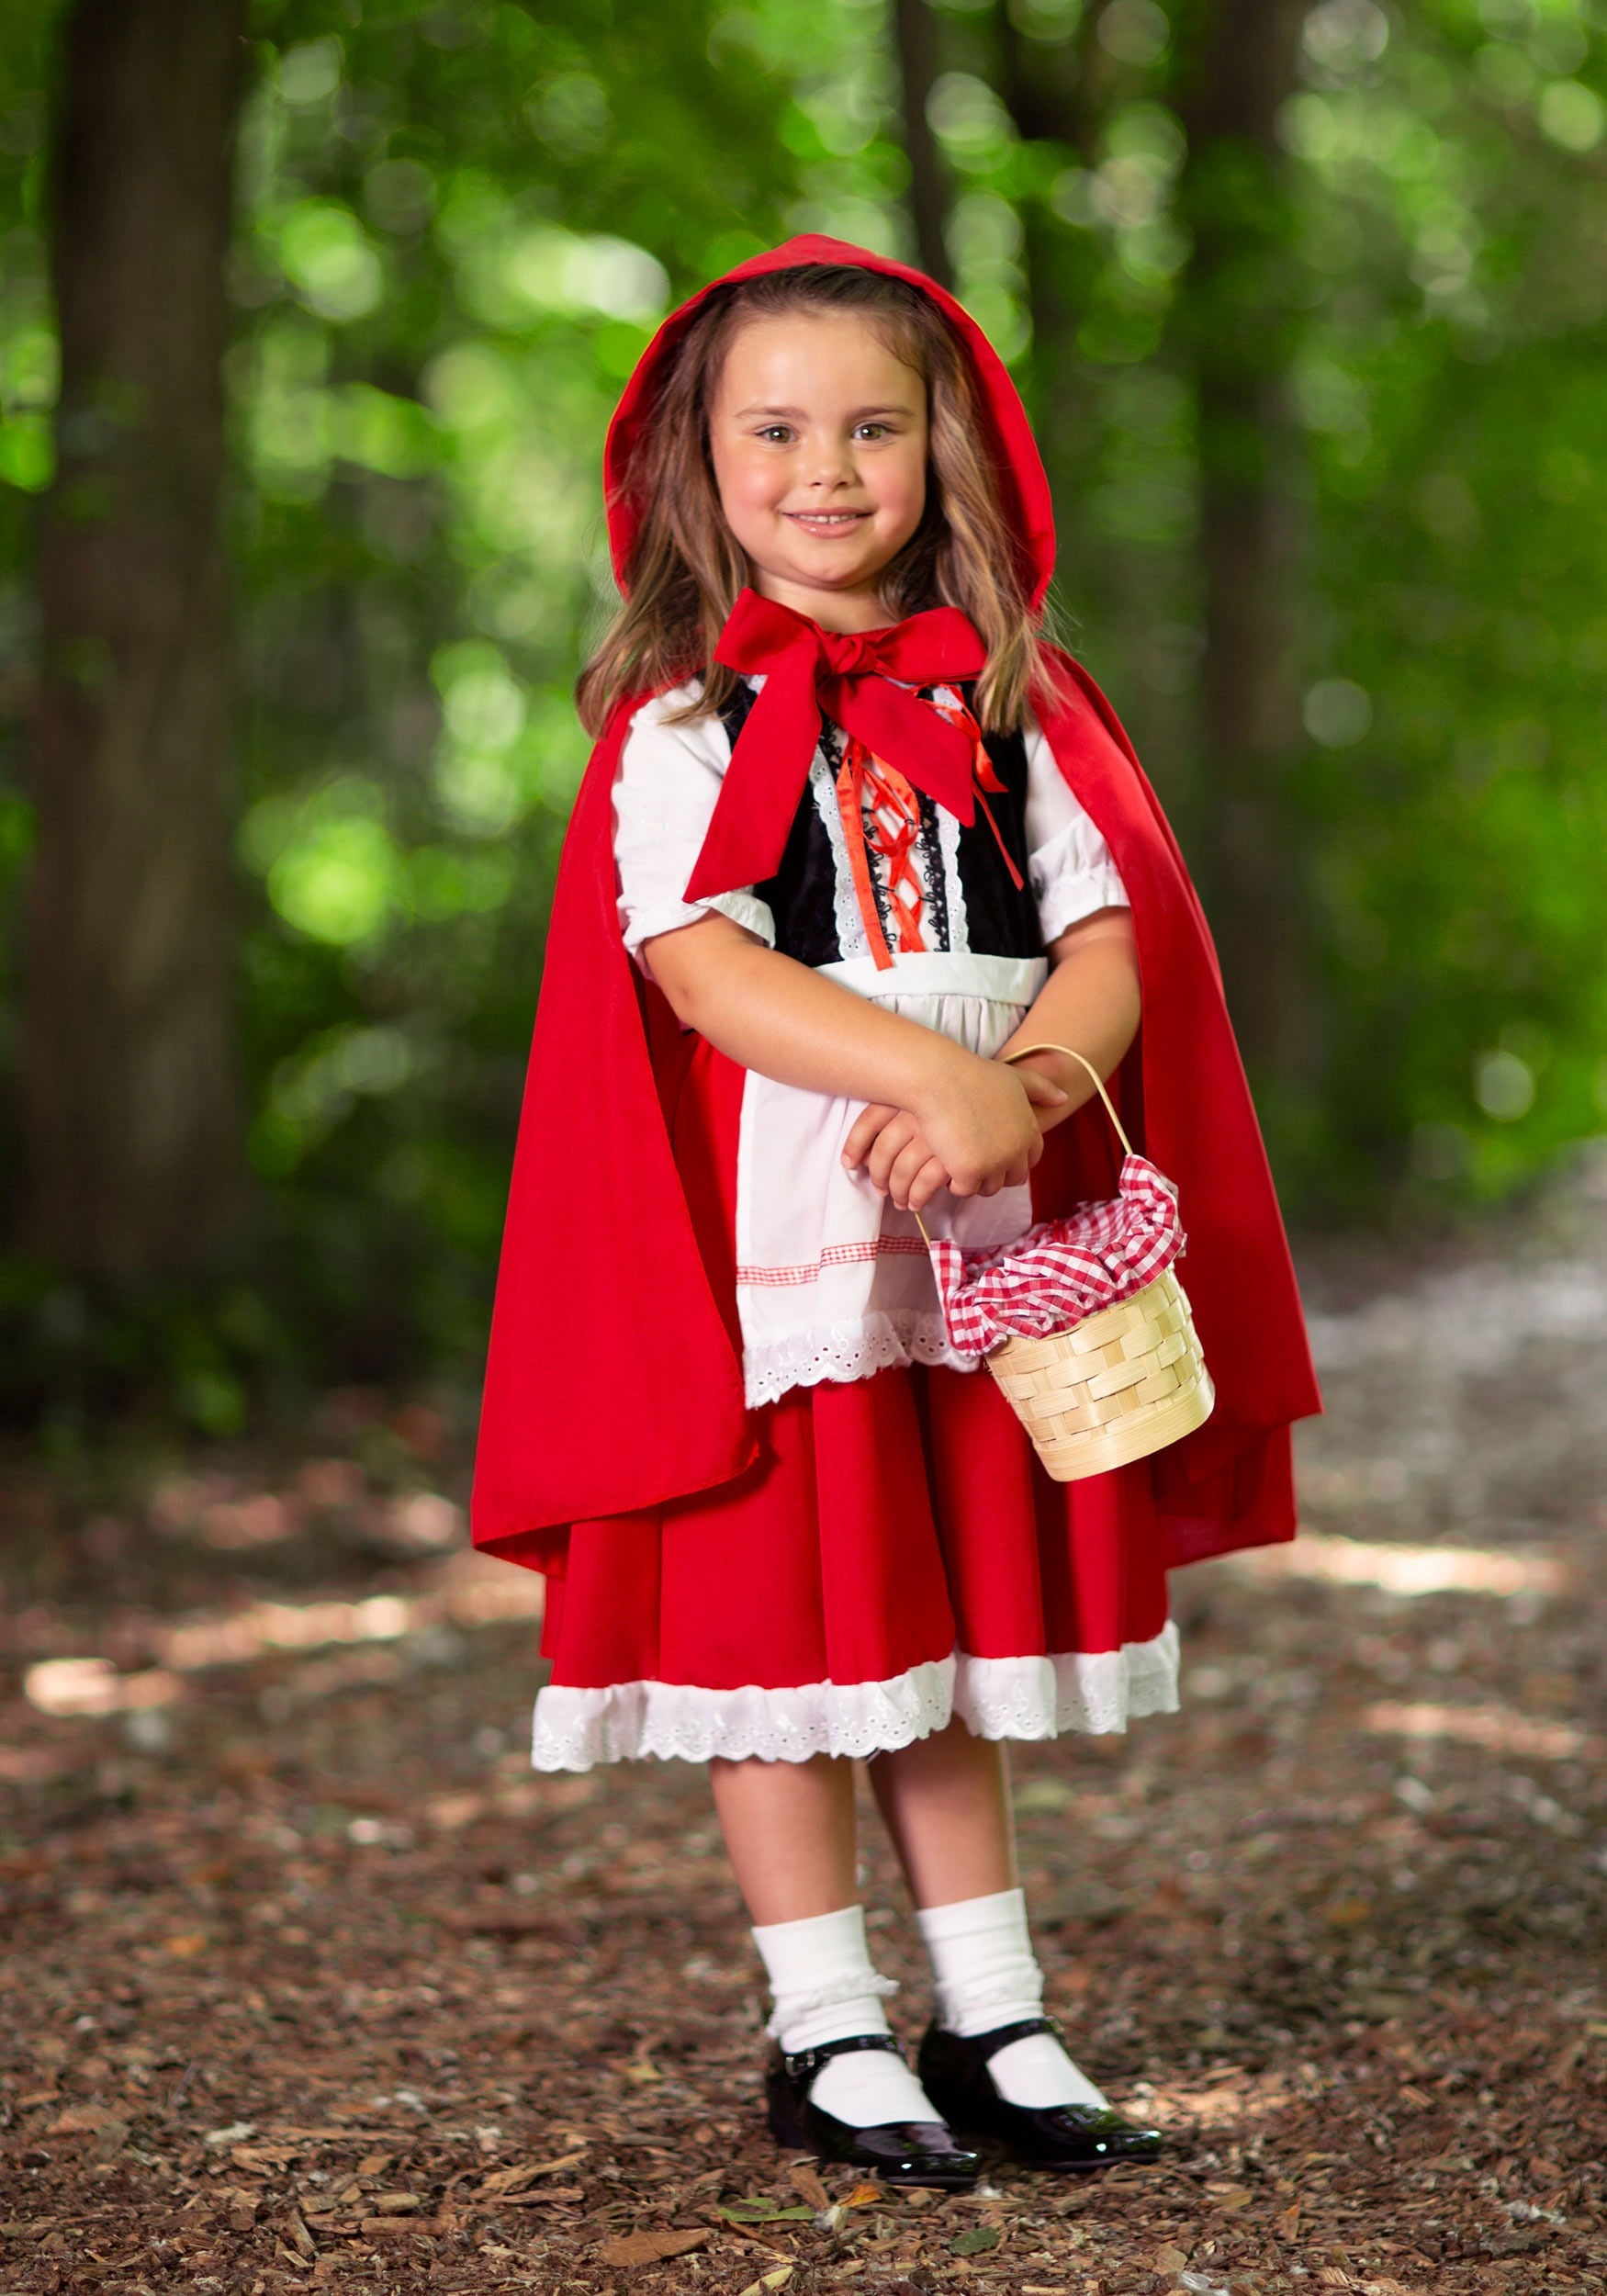 Little Red Riding Hood Kids Fancy Dress Costume 7-9 Cape And Fox Bag Included